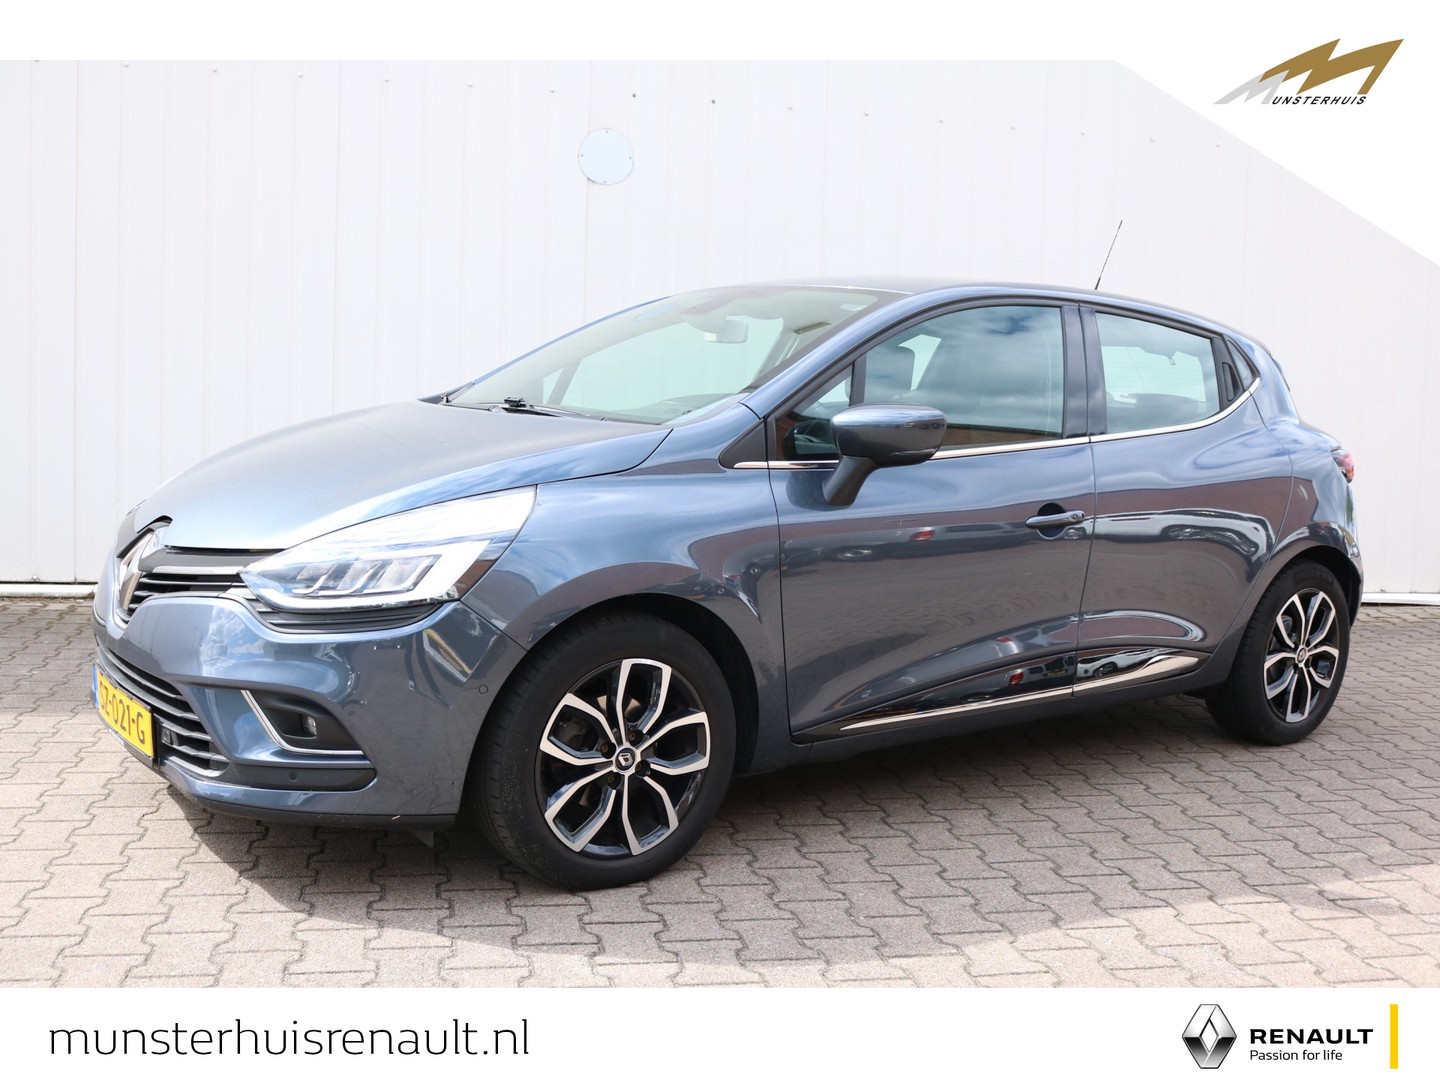 Renault Clio Tce 90 intens - led pure vision - inparkeersysteem